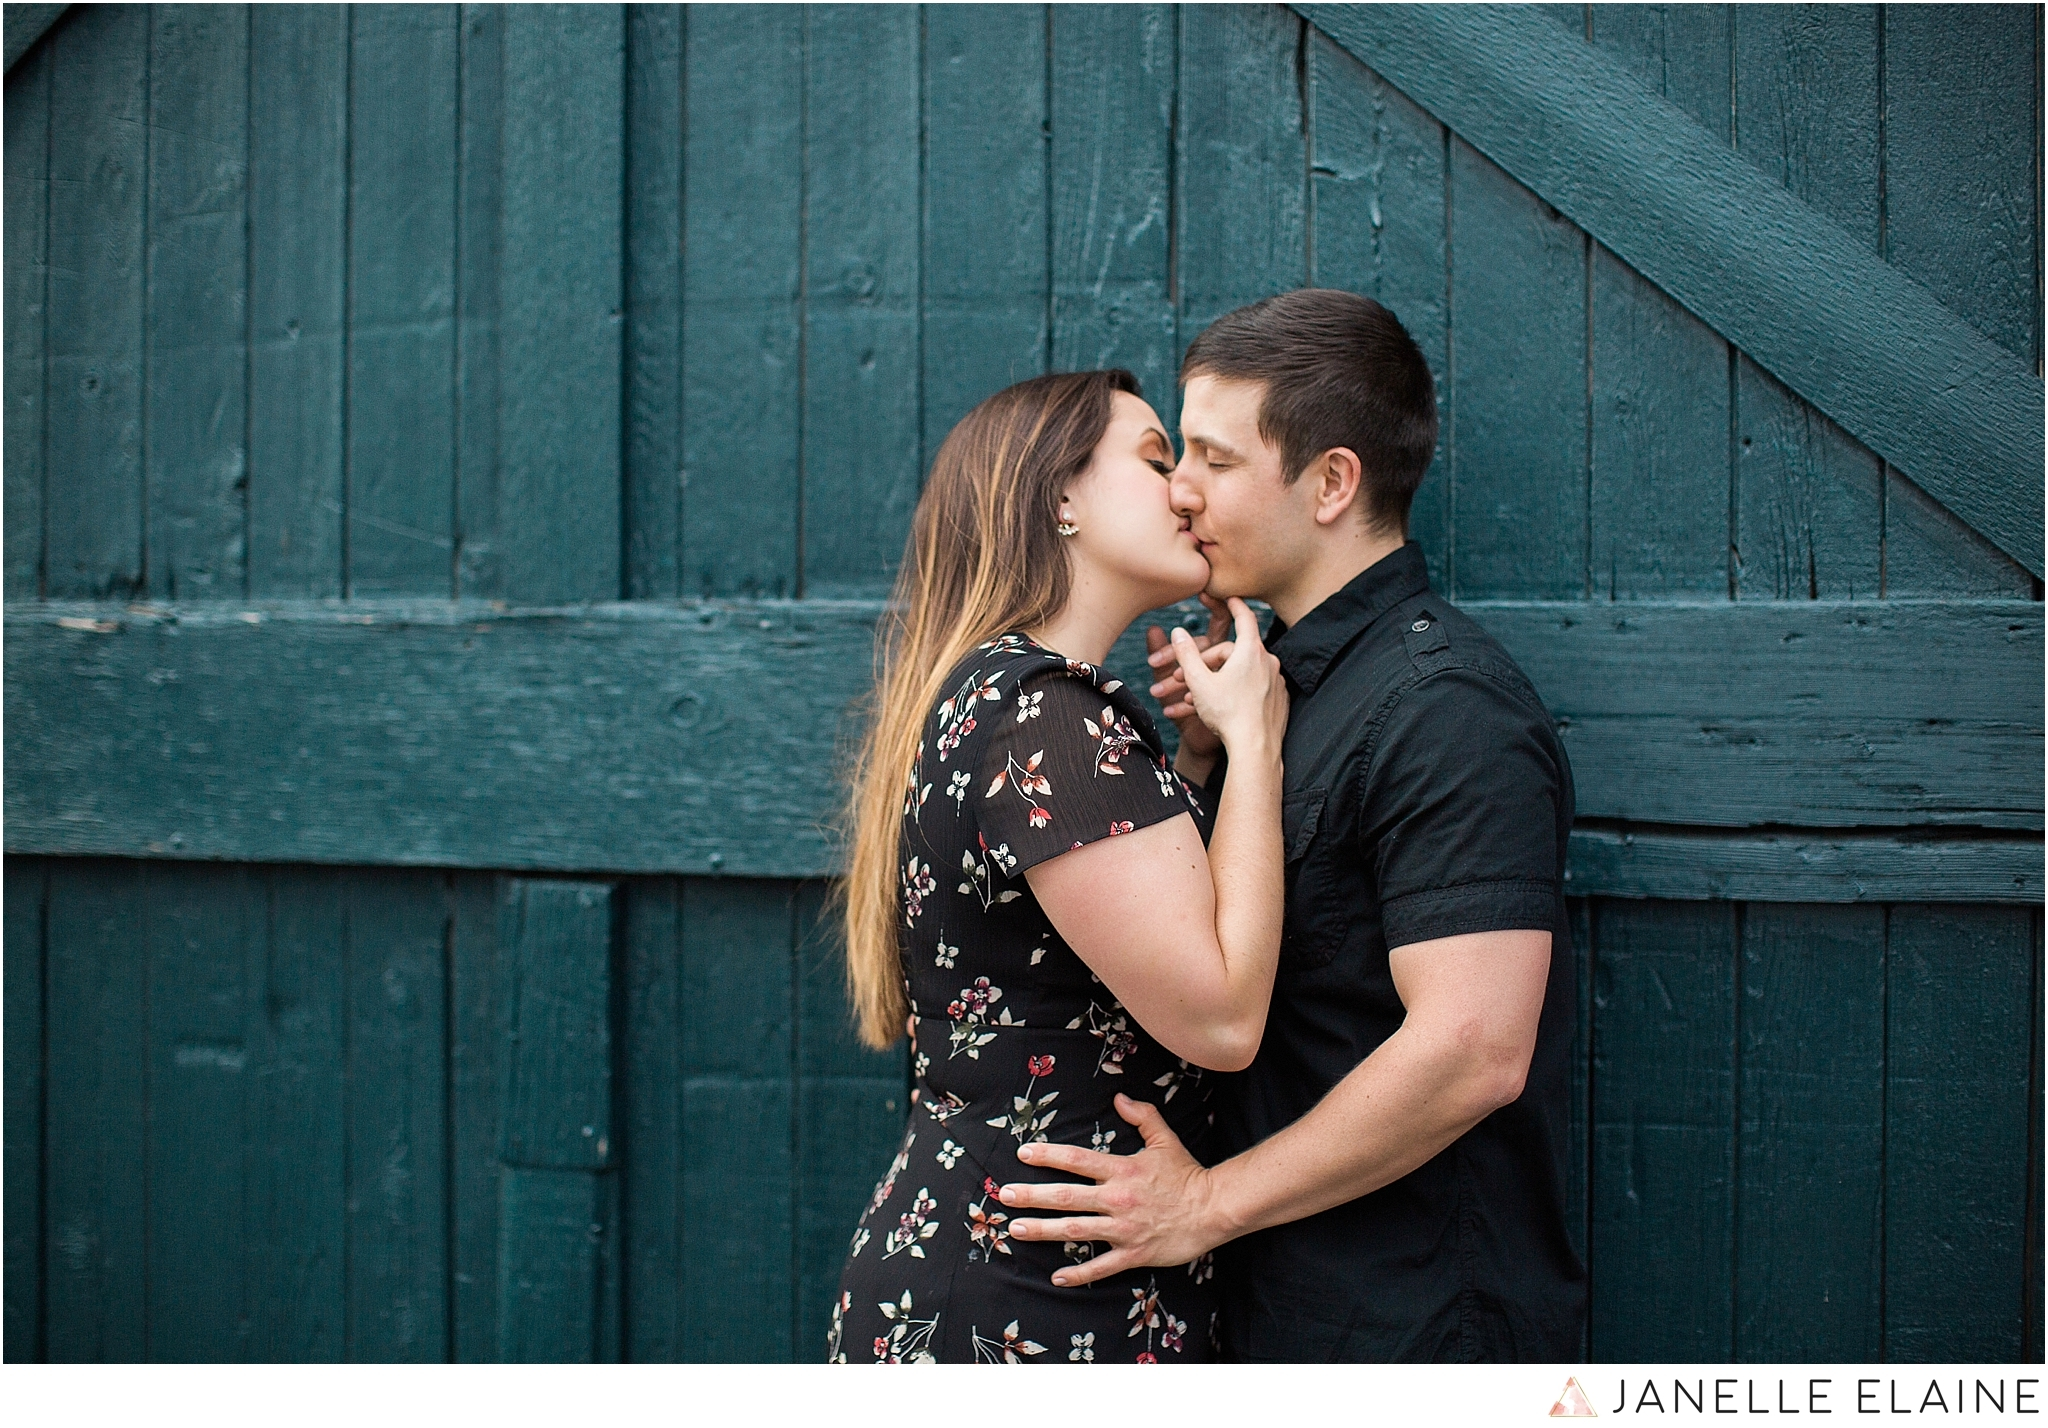 karen ethan-georgetown engagement photos-seattle-janelle elaine photography-78.jpg